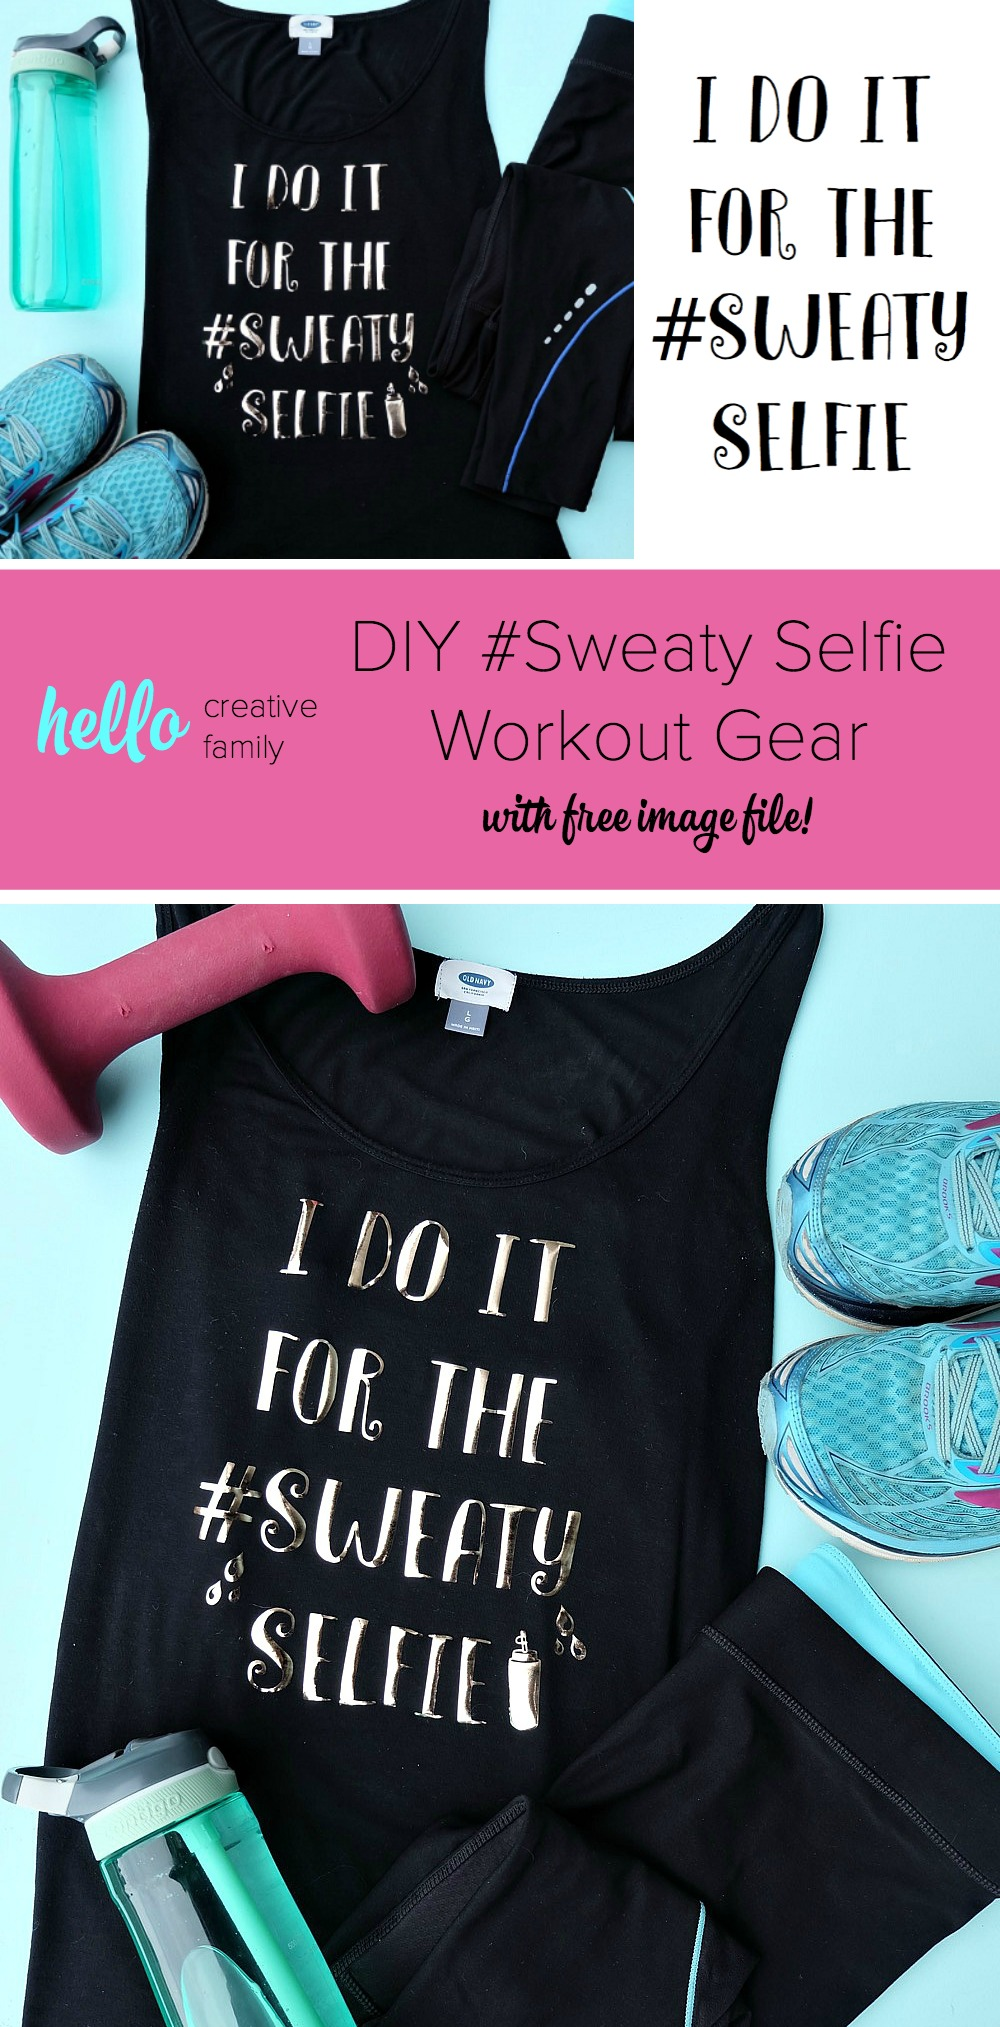 "Having cute workout gear makes it even more fun to workout! Create this adorable DIY Workout Shirt that says ""I do it for the #SweatySelfie"" to keep you motivated at the gym! This post has a free cut file along with a step by step tutorial with photos for making this easy project using your Cricut! #CricutMade #Fitness #FitnessGear #Crafts #CricutProject"